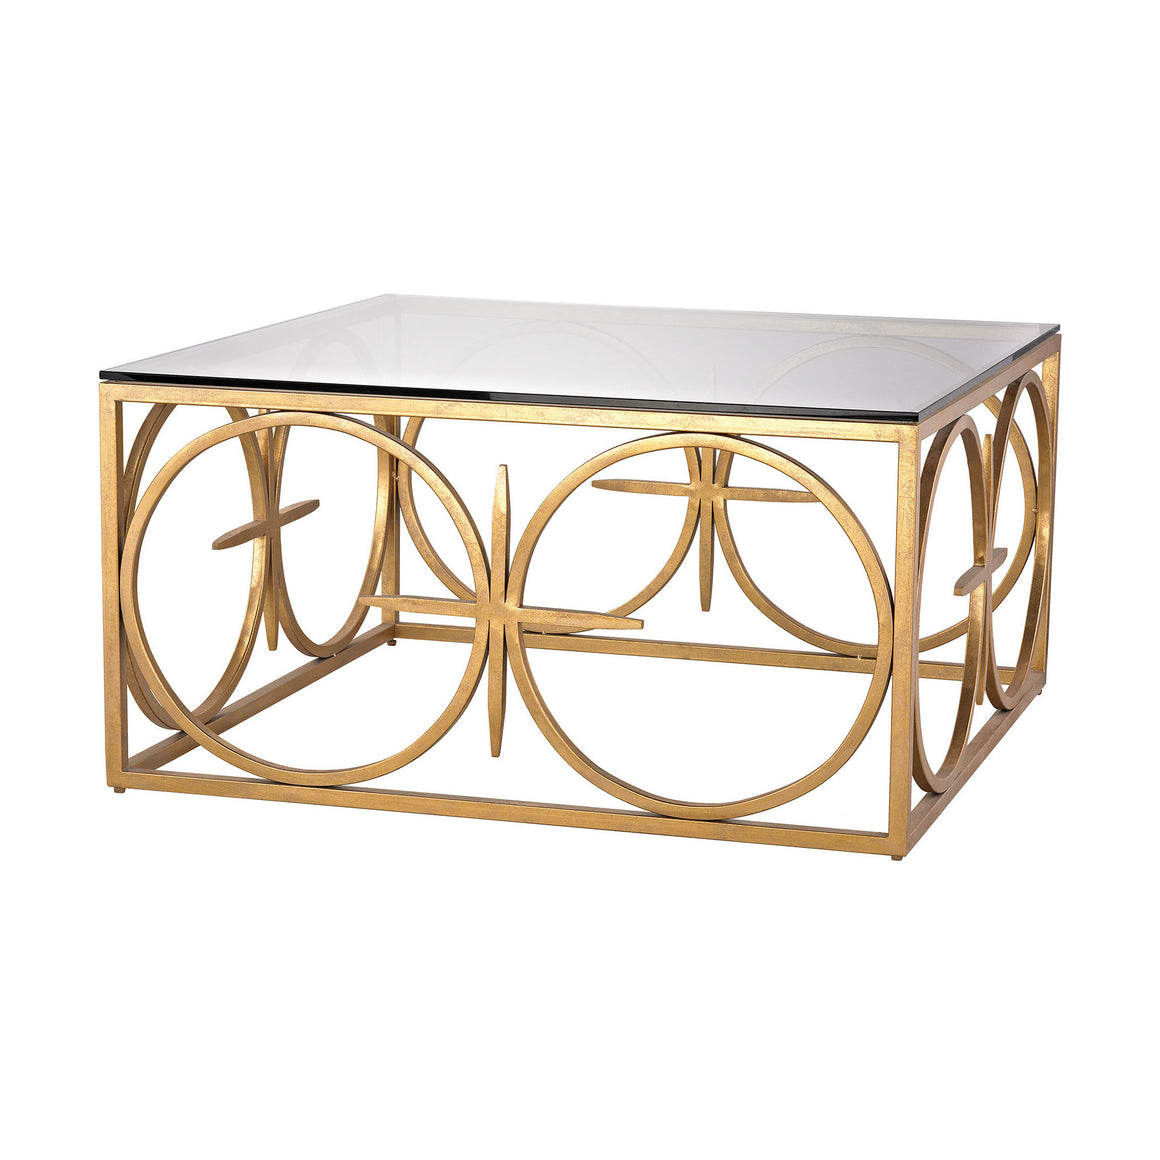 Amal Coffee Table 1114-219 by Dimond Home